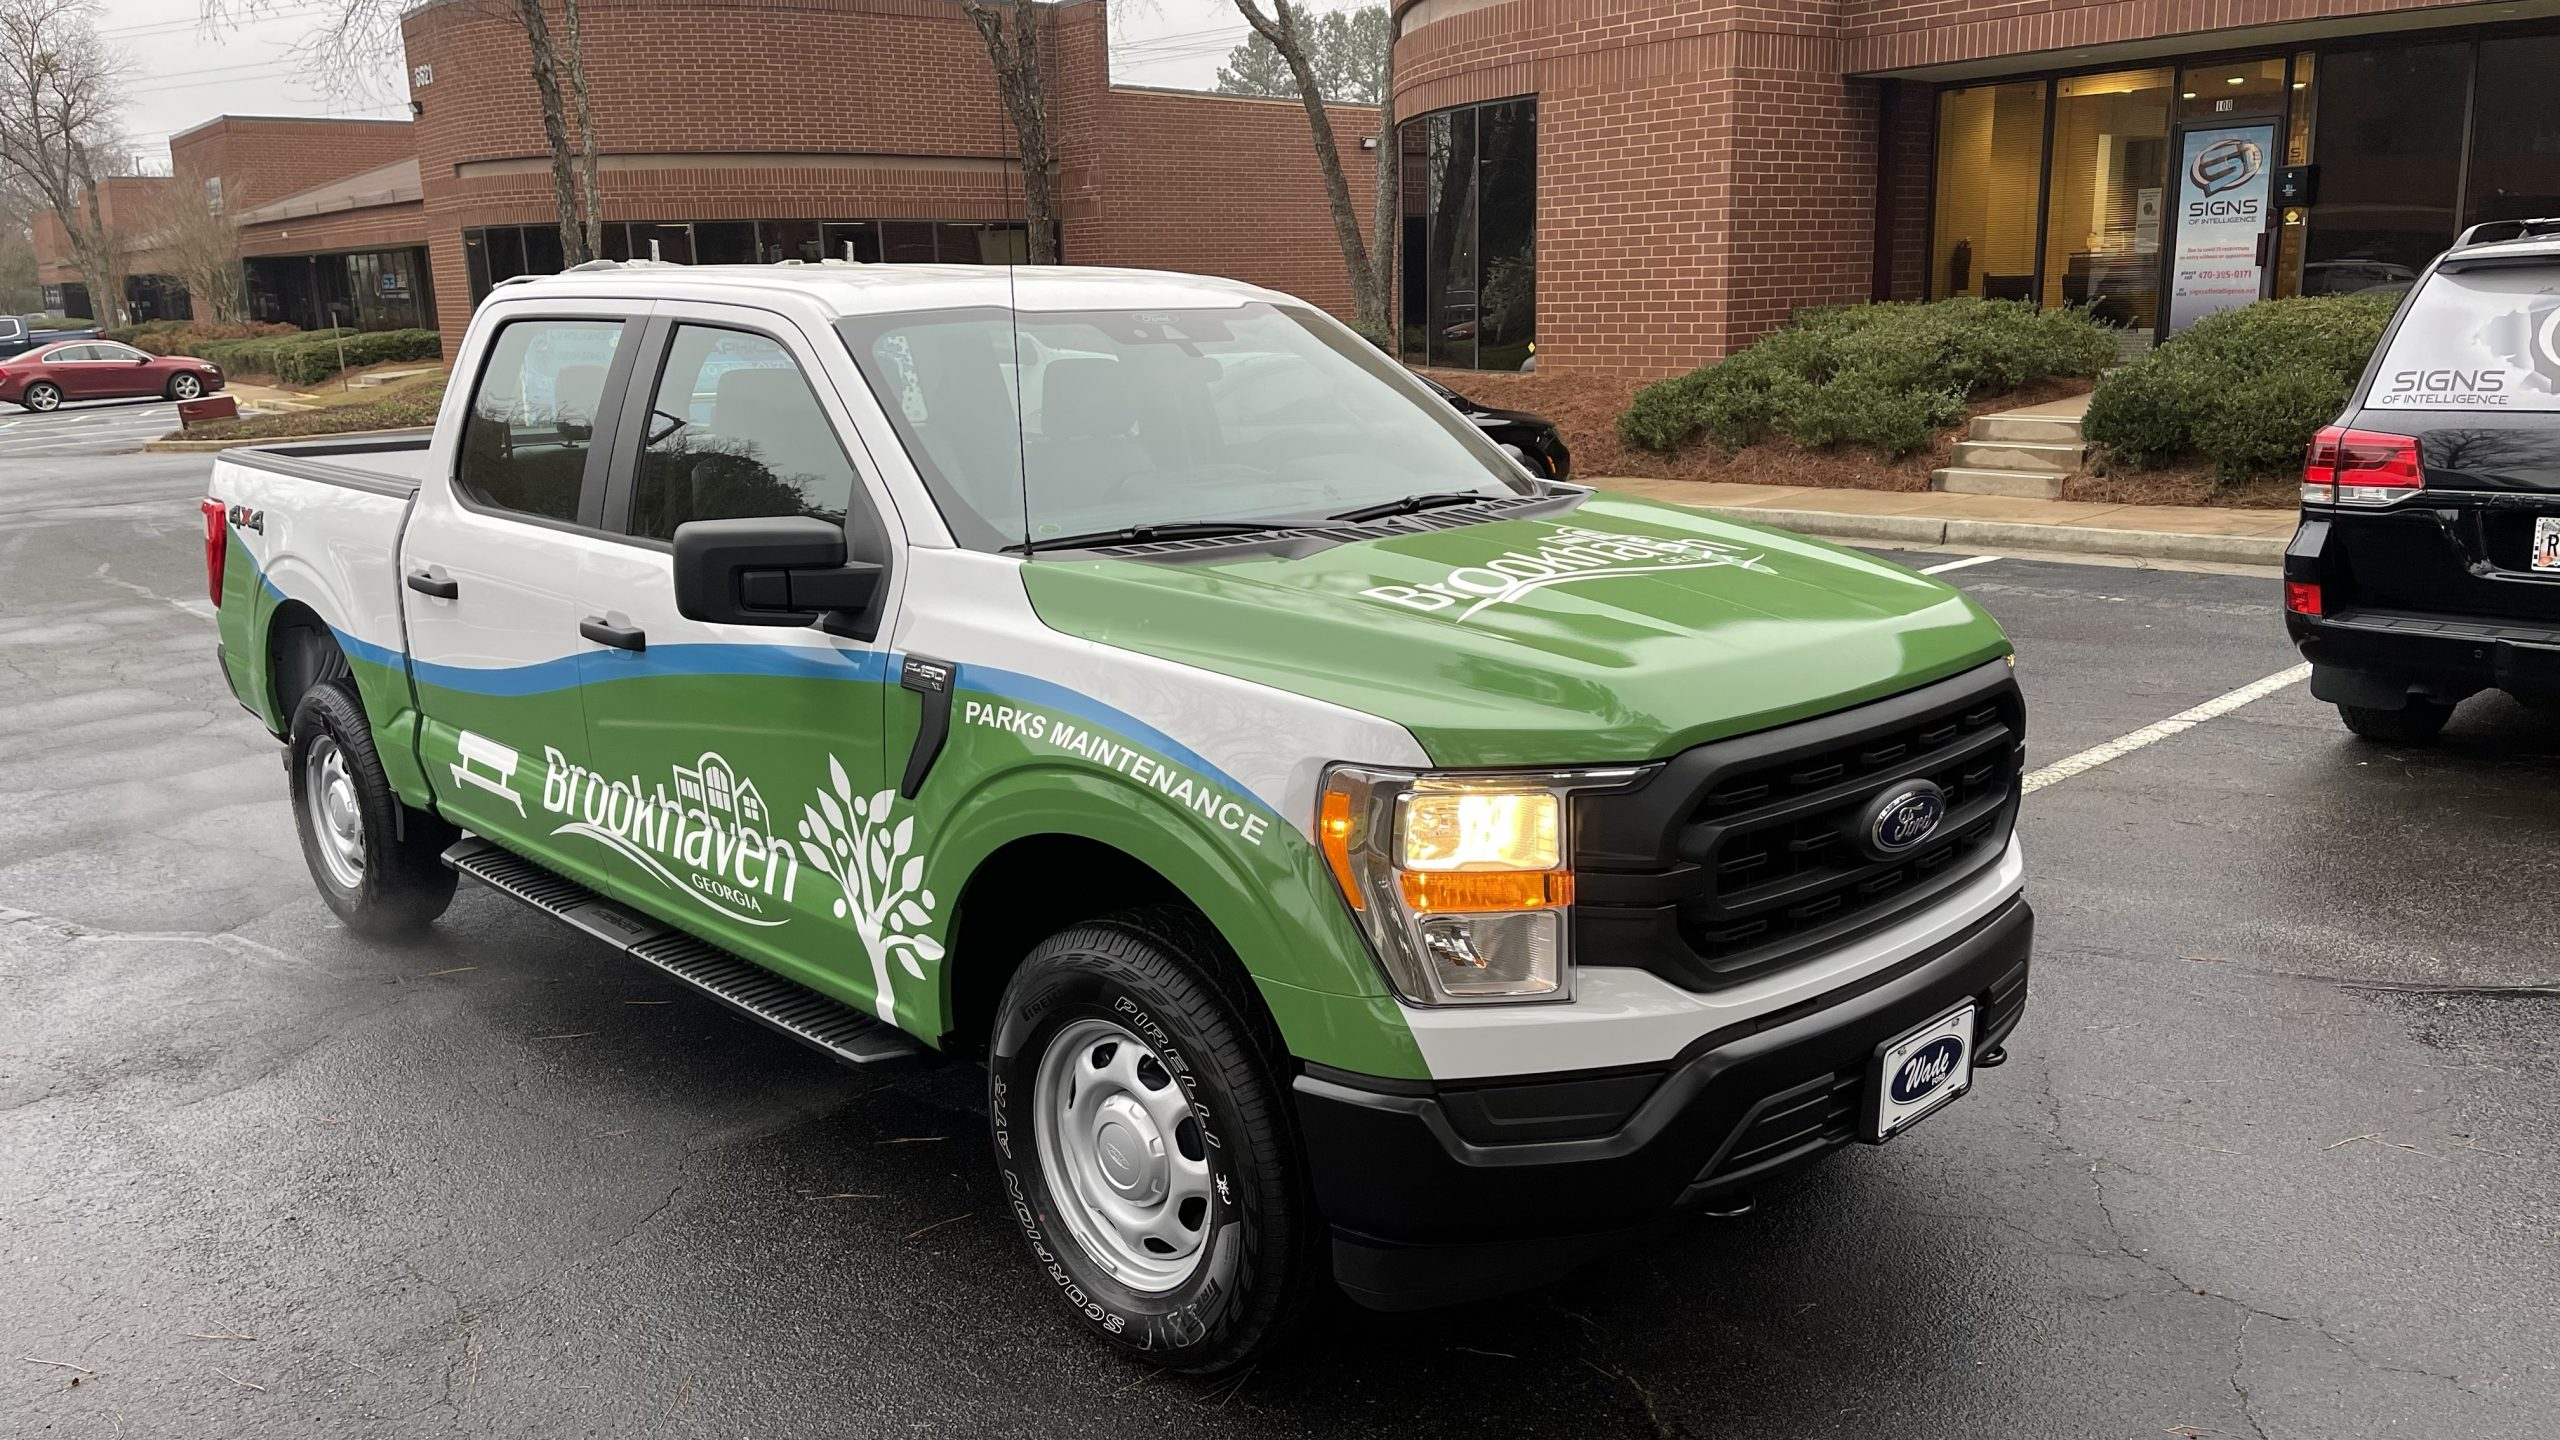 Vehicle Graphics & Wraps for your business – Signs of Intelligence is the best Sign Company in Peachtree Corners, GA